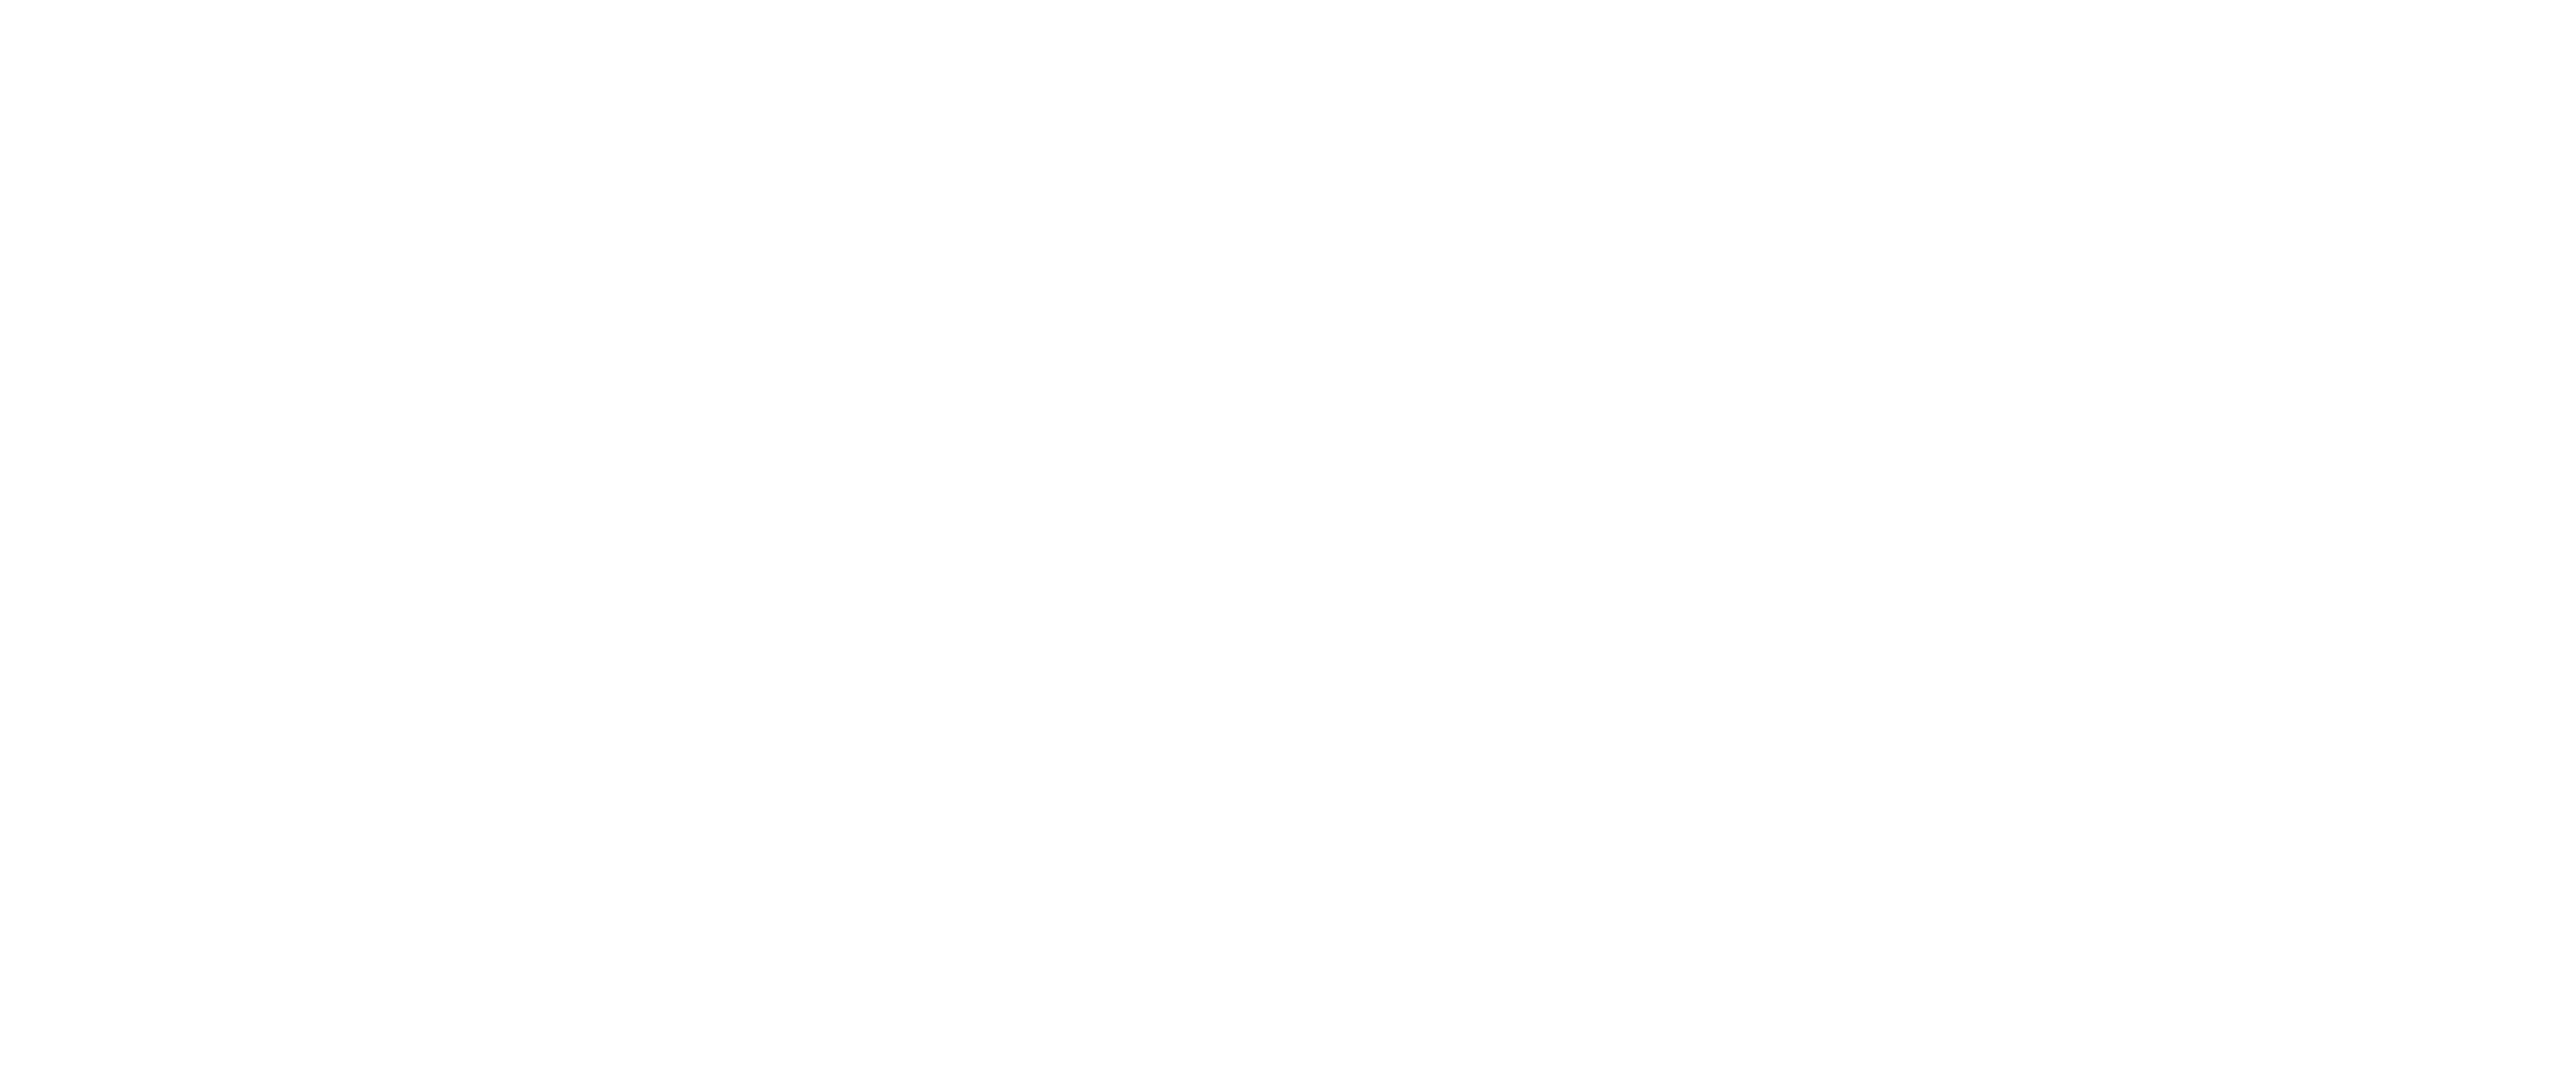 Cornwall Travel Guide Logo